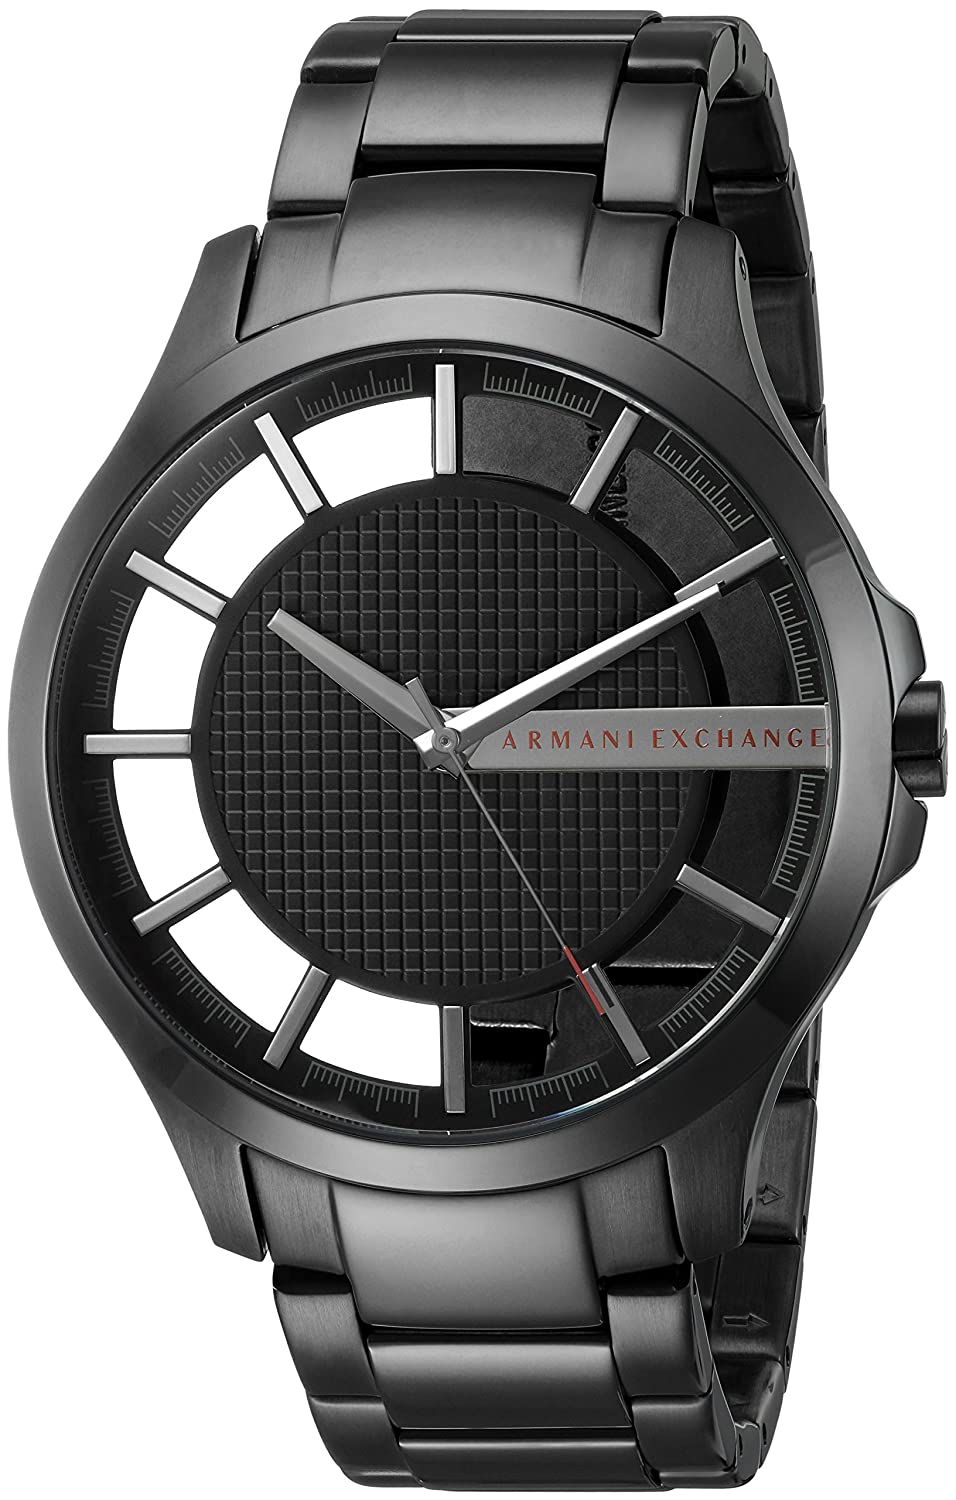 f84ec77d7 Amazon.com: Armani Exchange Men's Black IP Plated Stainless Steel Watch  AX2189: Armani Exchange: Watches